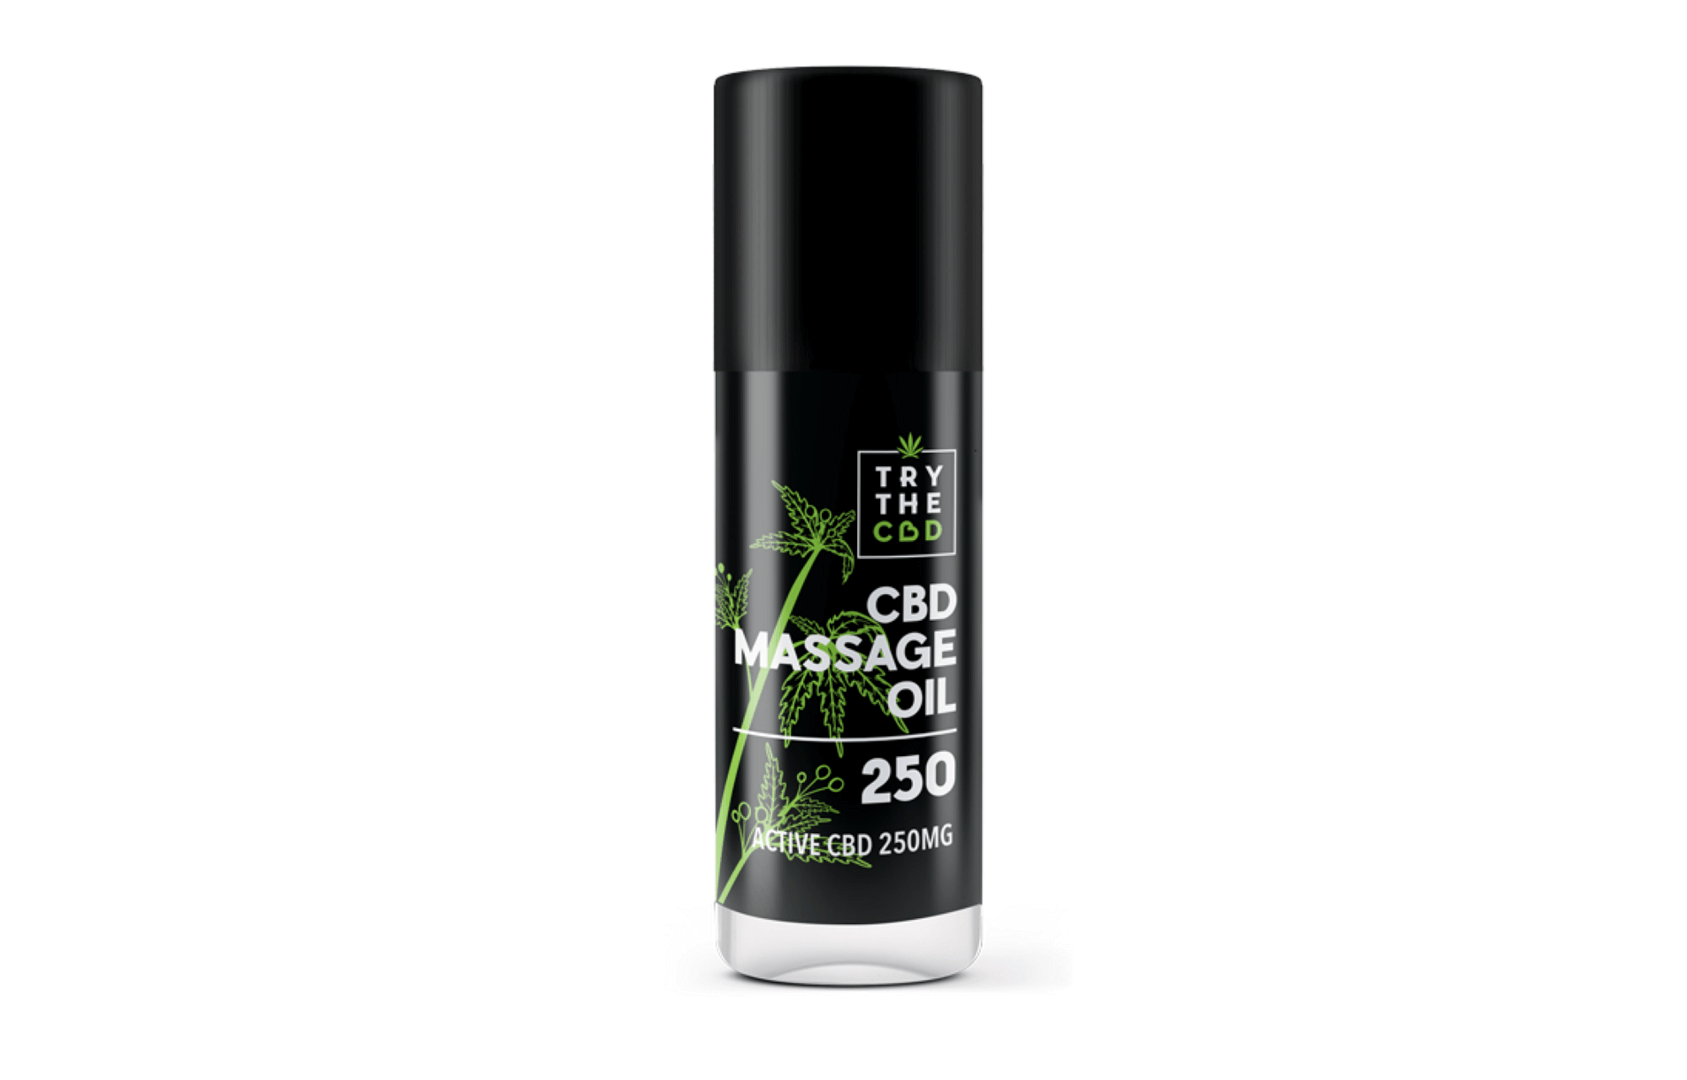 TryTheCbd massage oil